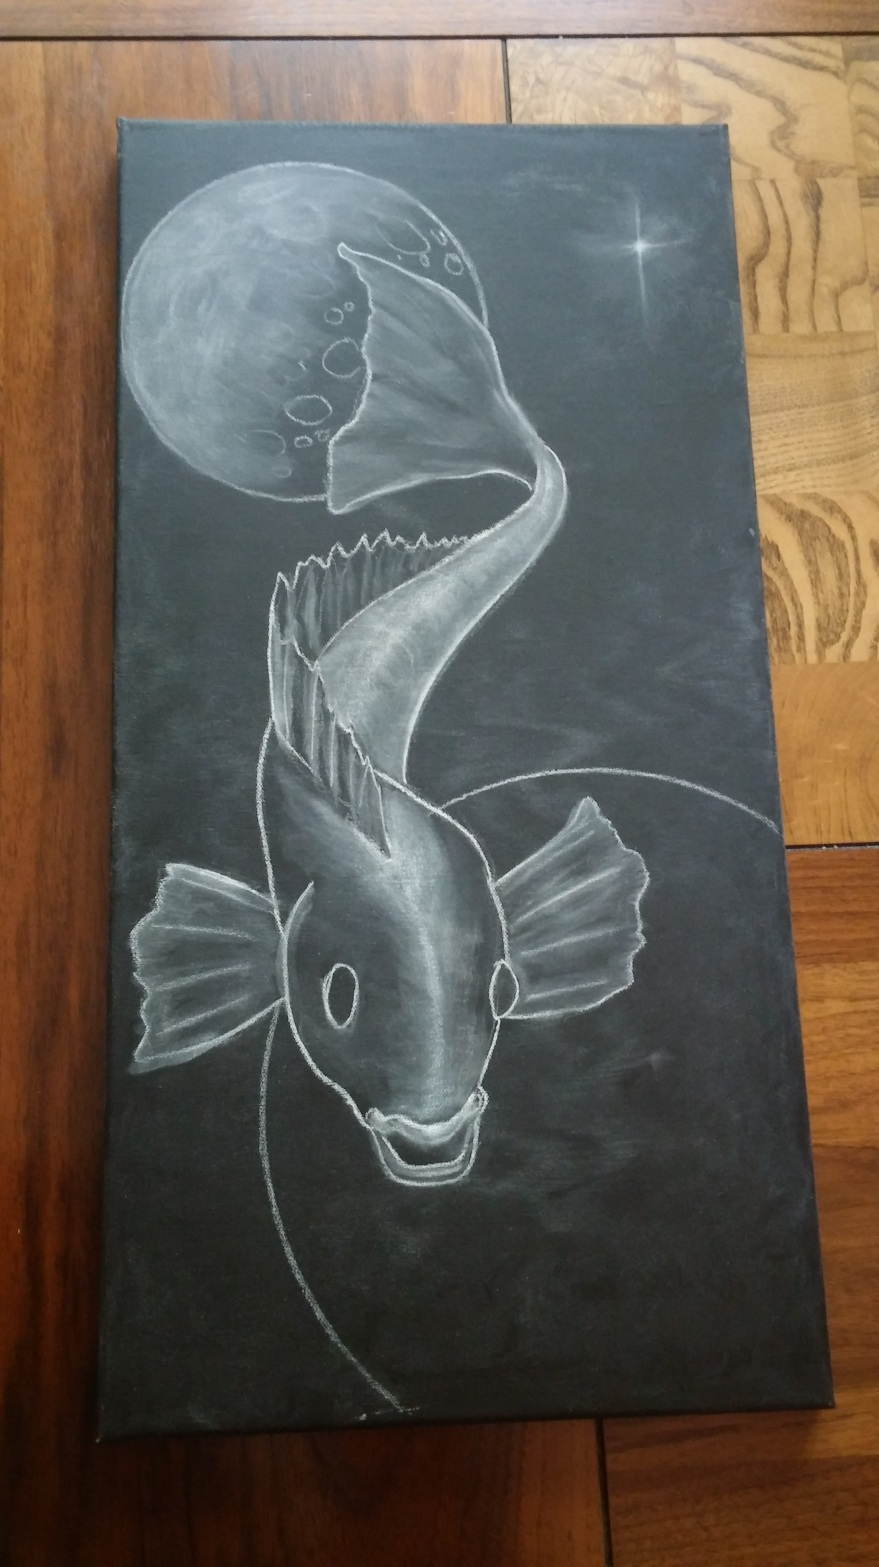 Shaun Hays, Chicago Chalk Champ - unfinished piece - Fish in Space Concept on a canvas...